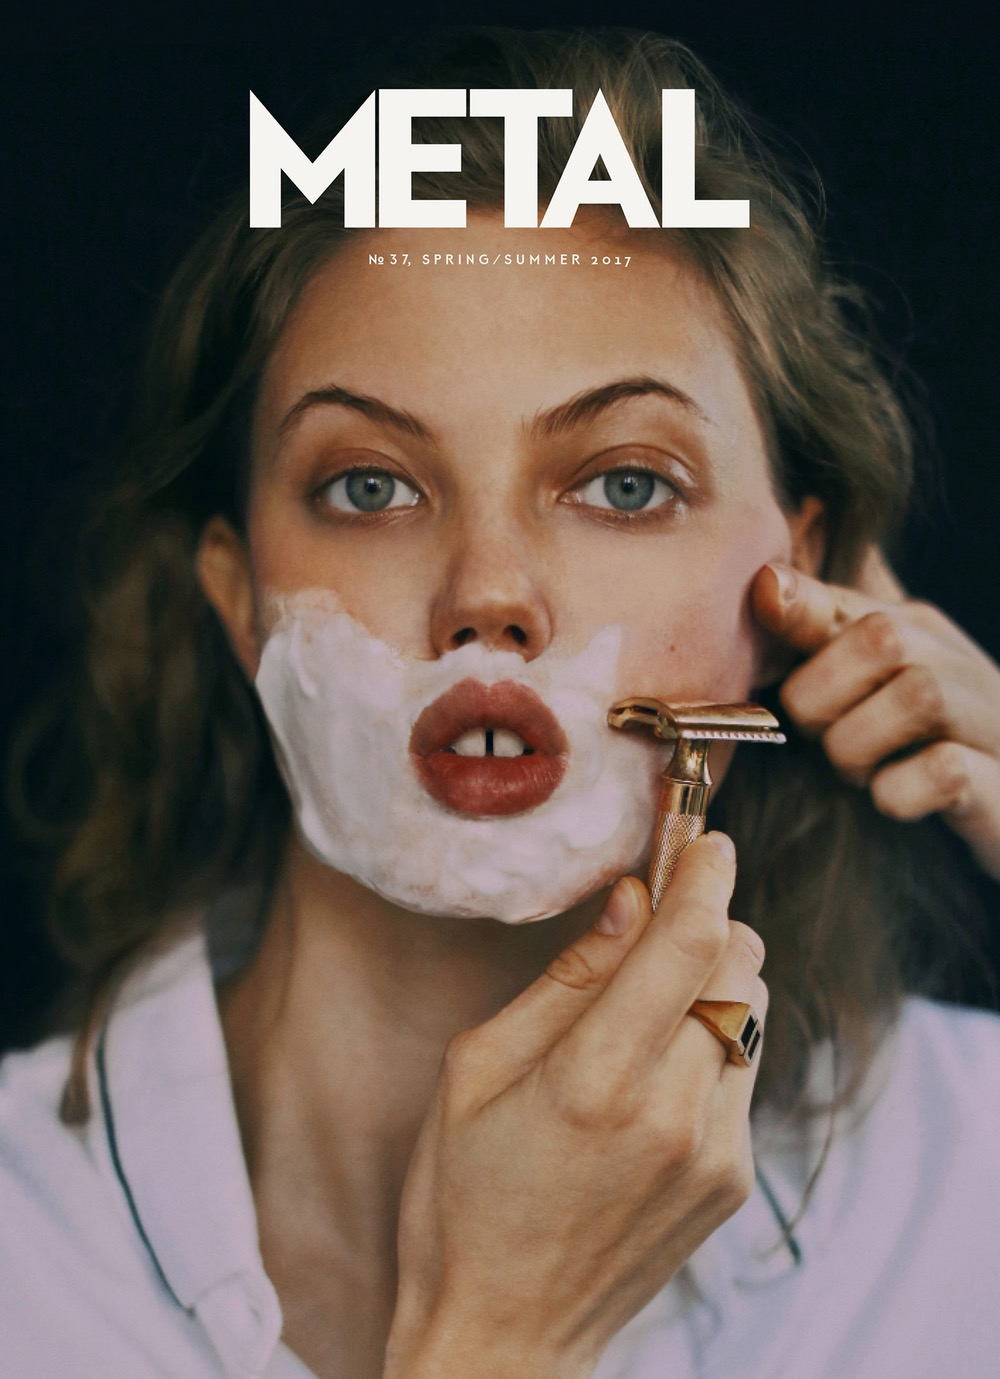 COVER 1 - Lindsey Wixson photographed by Gabriela Celeste wearing shirt Dolce & Gabbana and ring Dior.